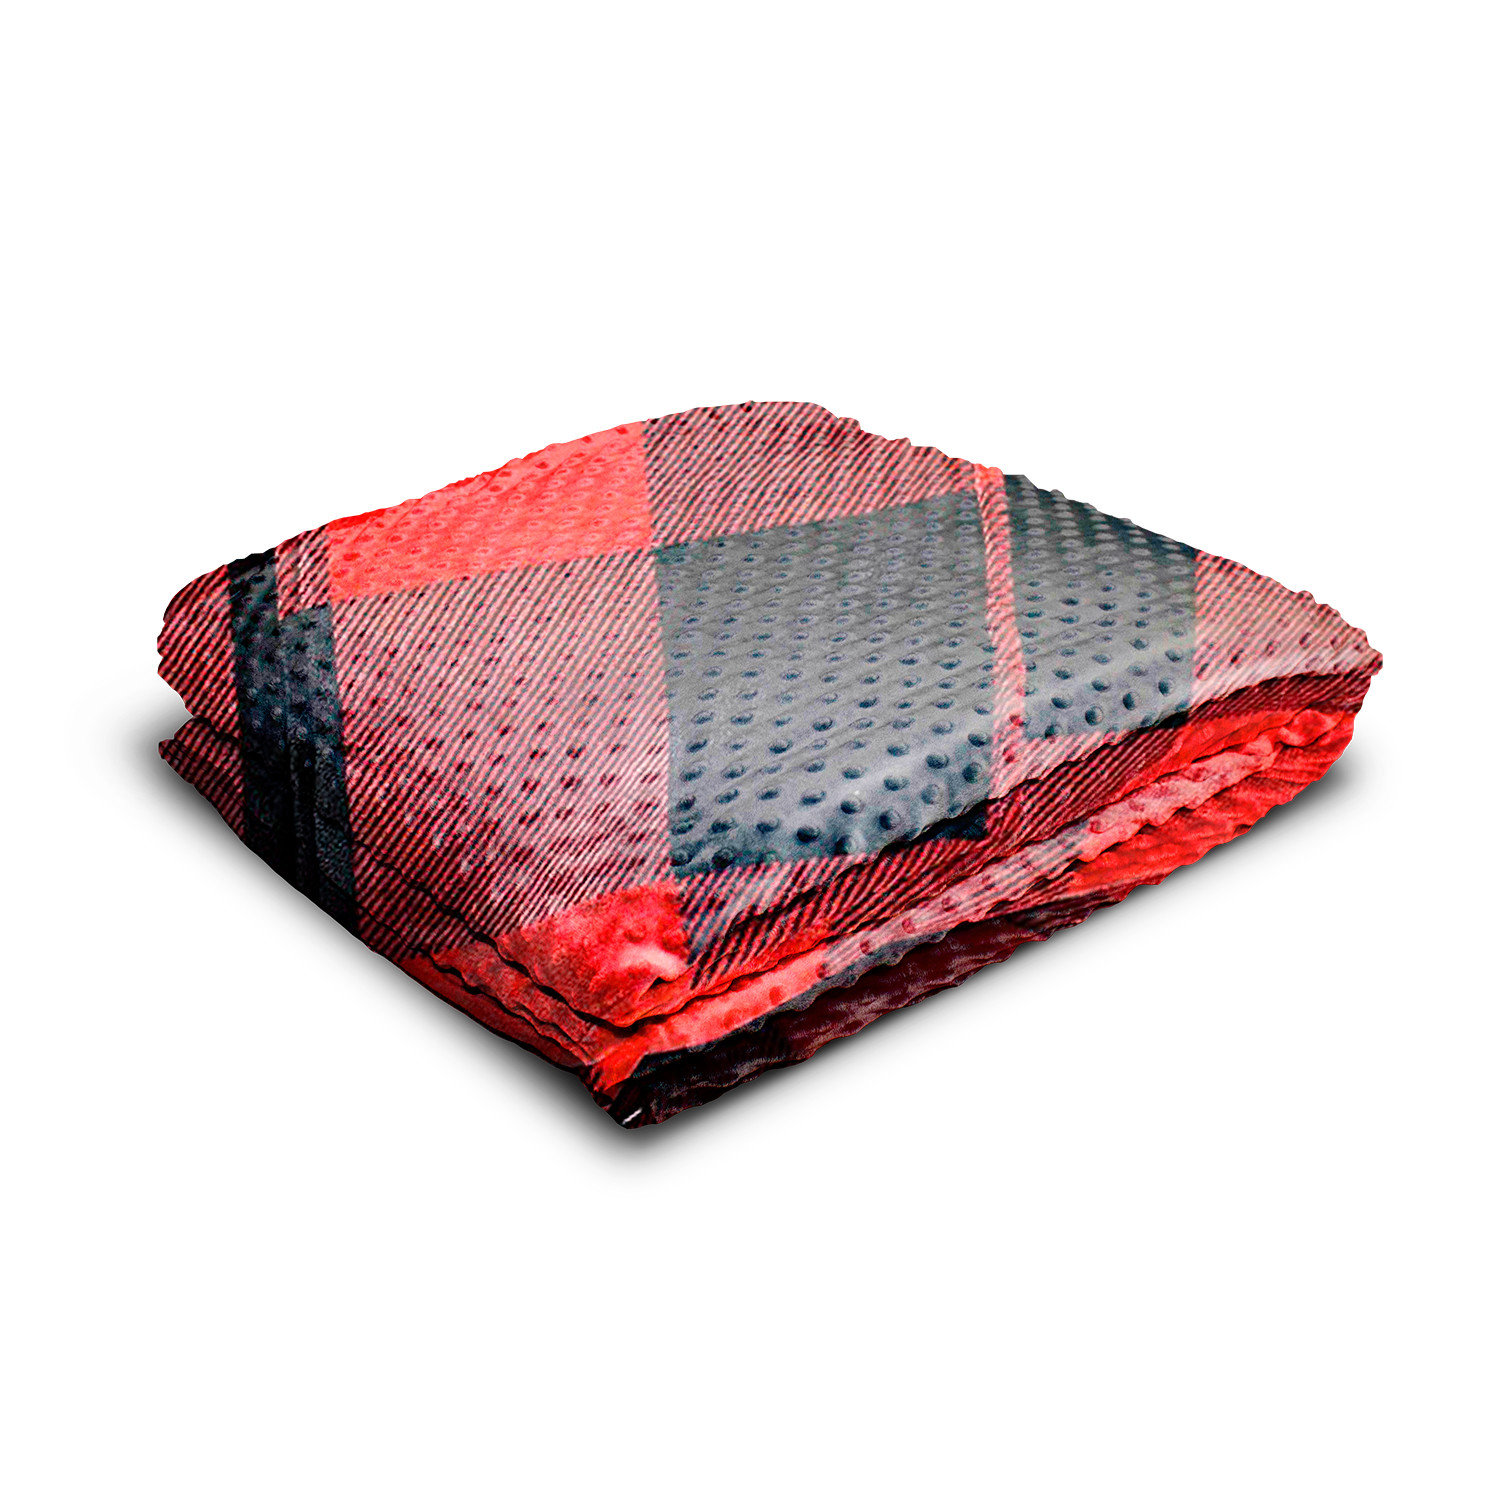 Weighted Blanket Minky Bamboo Cover Red Black